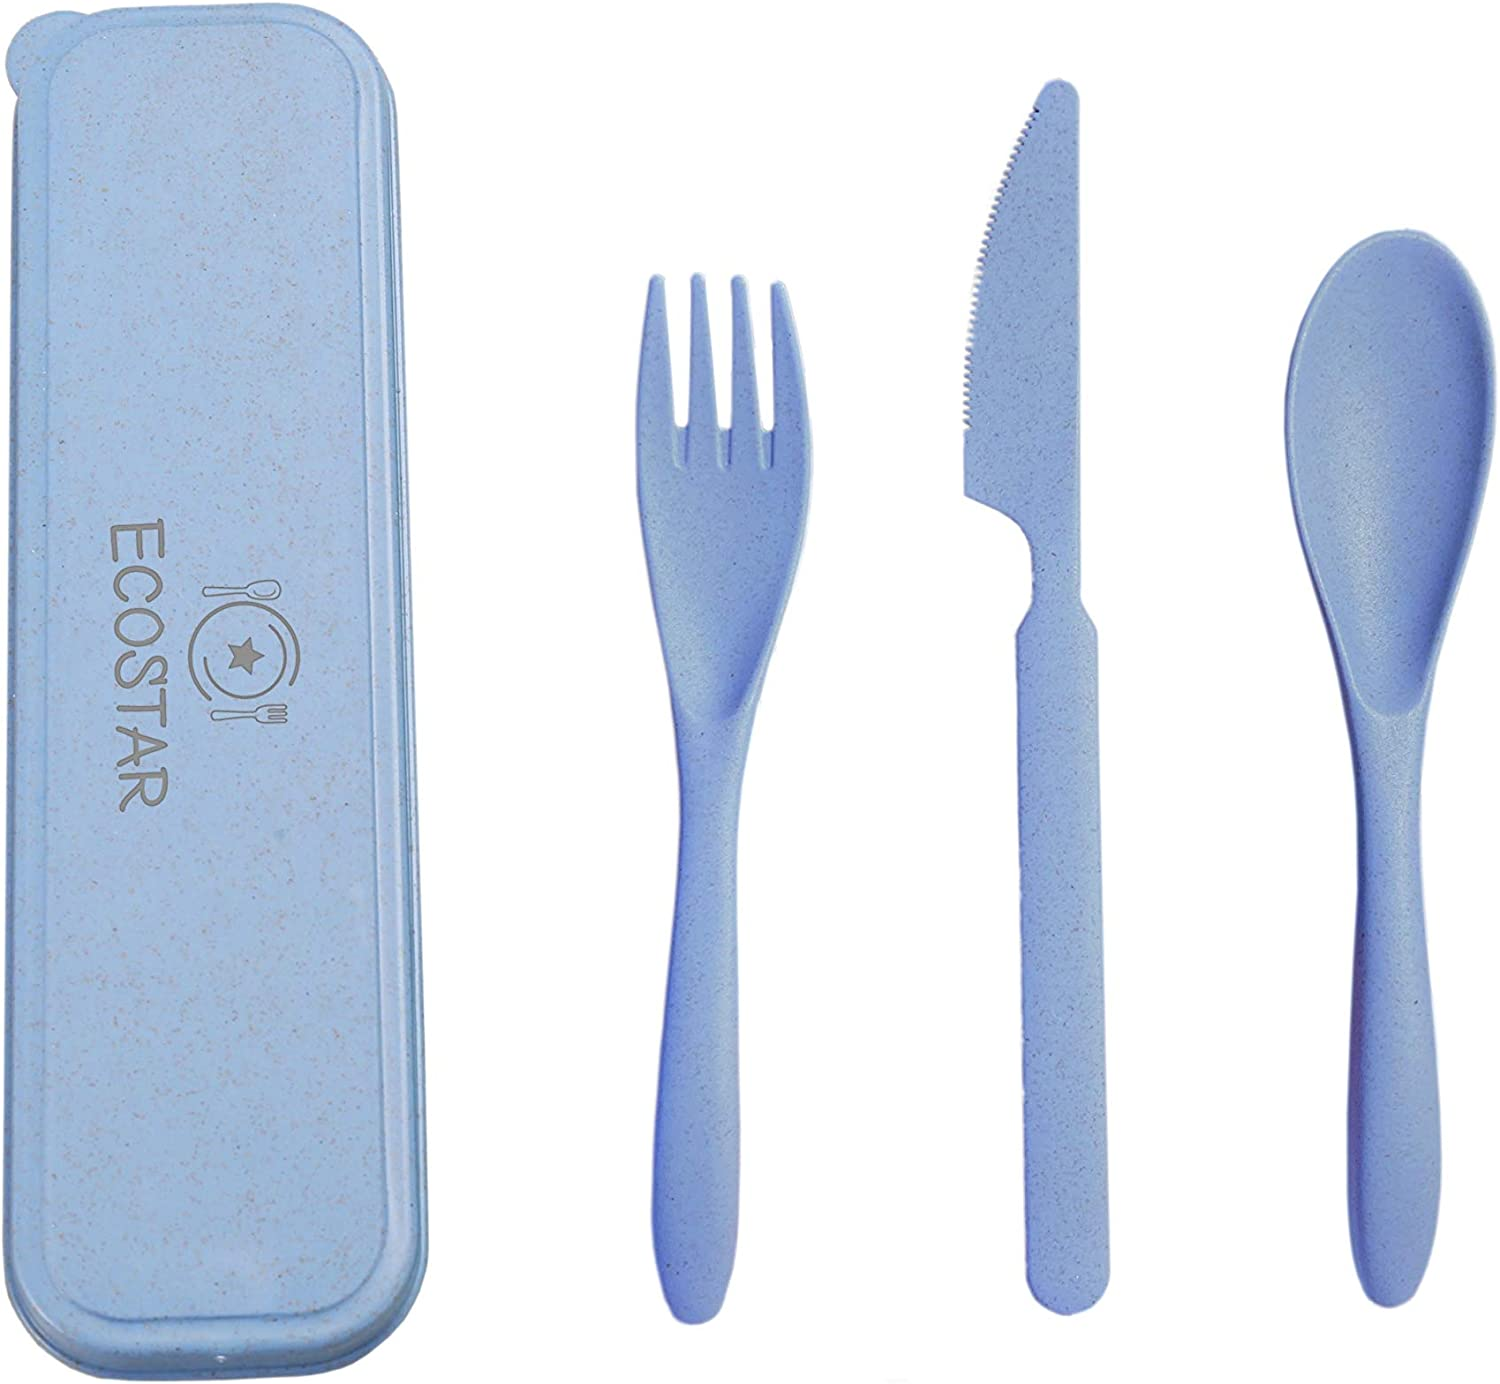 ECOSTAR Portable Wheat Straw Cutlery Set, 3-Piece Reusable Eco-Friendly BPA Free Utensils including Biodegradable Knife Spoon Fork and Travel Case - Great for Kids and Adults (Blue, 1)